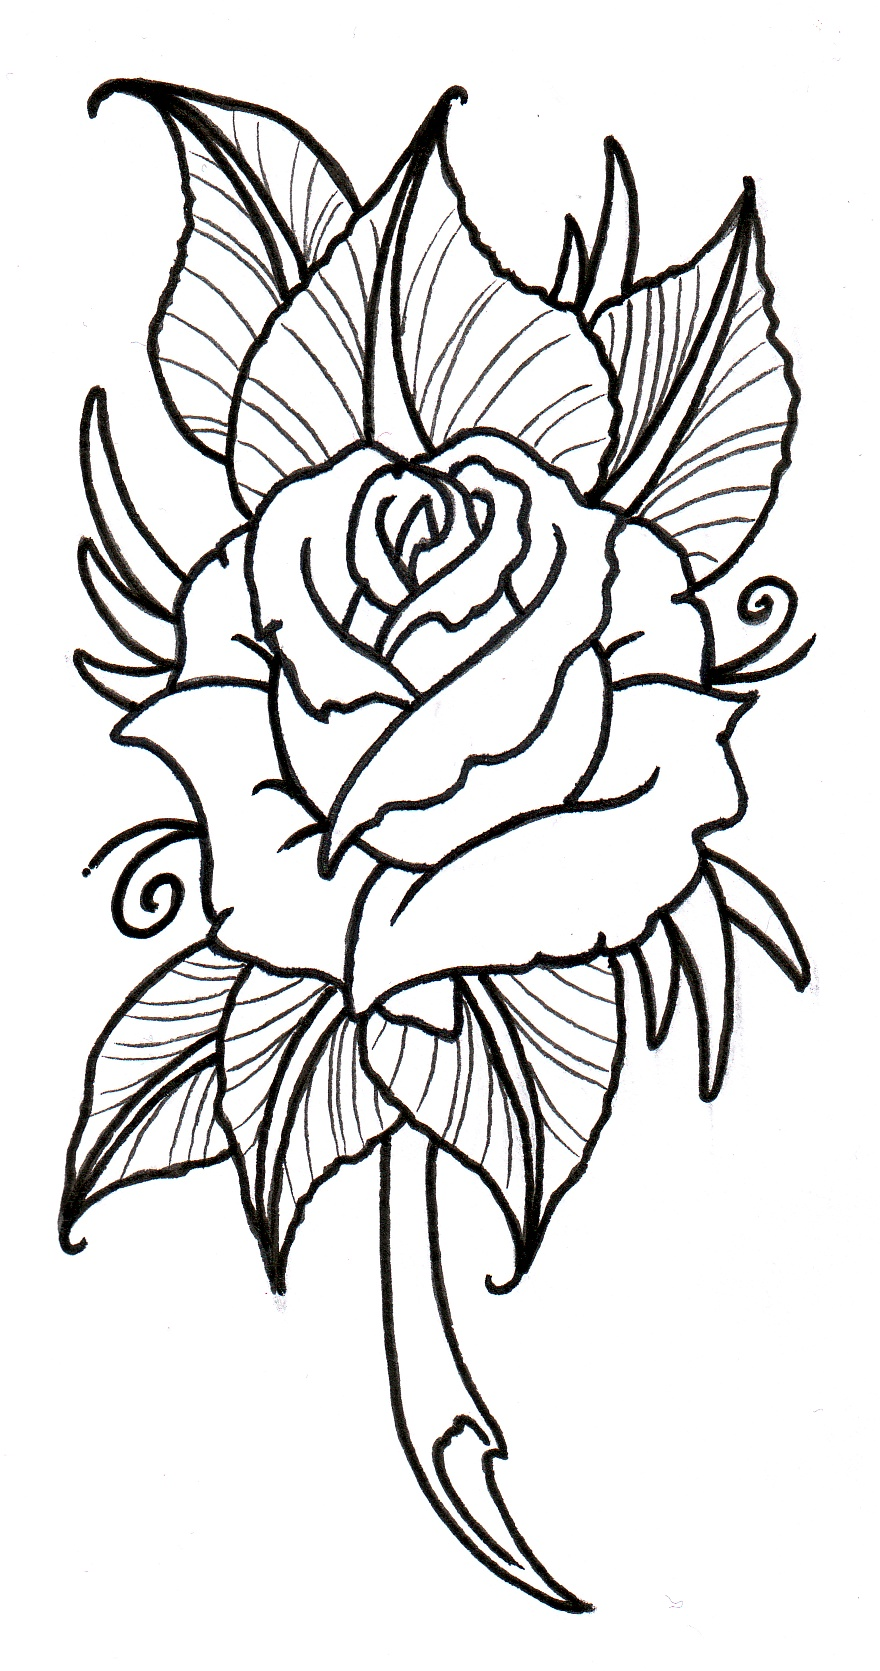 Roses free rose clipart public domain flower clip art images and.